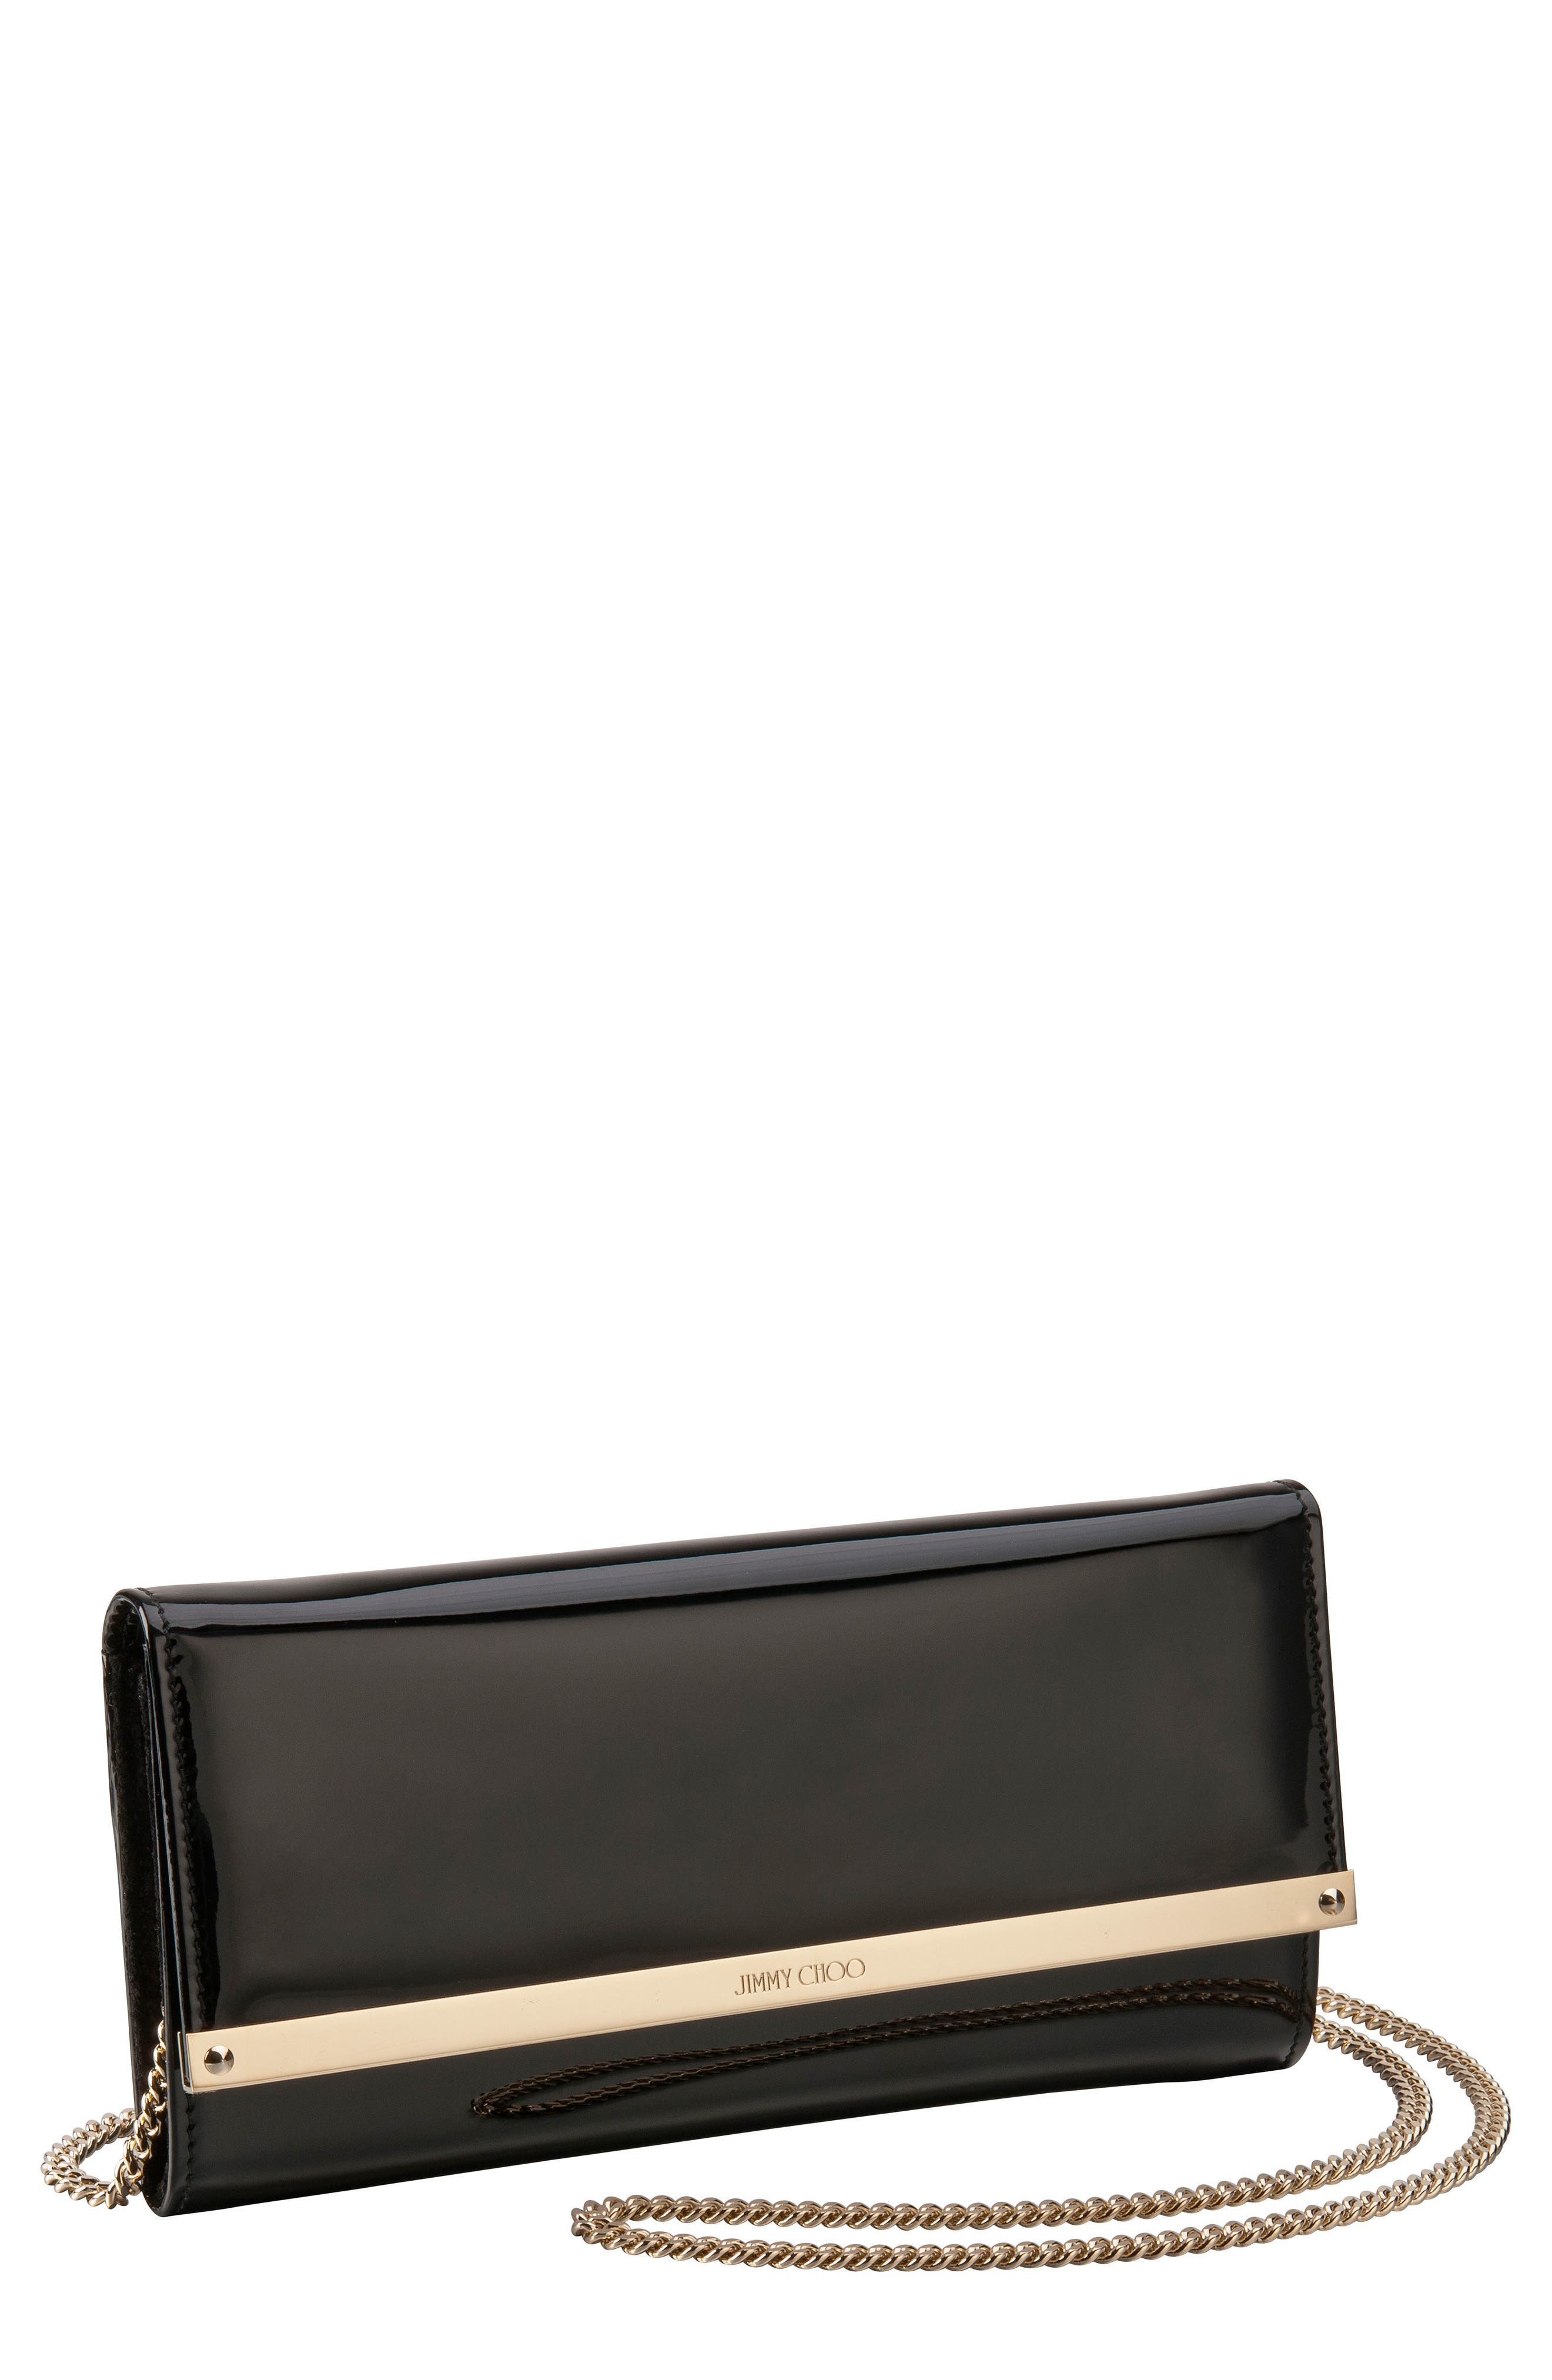 Main Image - Jimmy Choo Milla Leather Wallet on a Chain